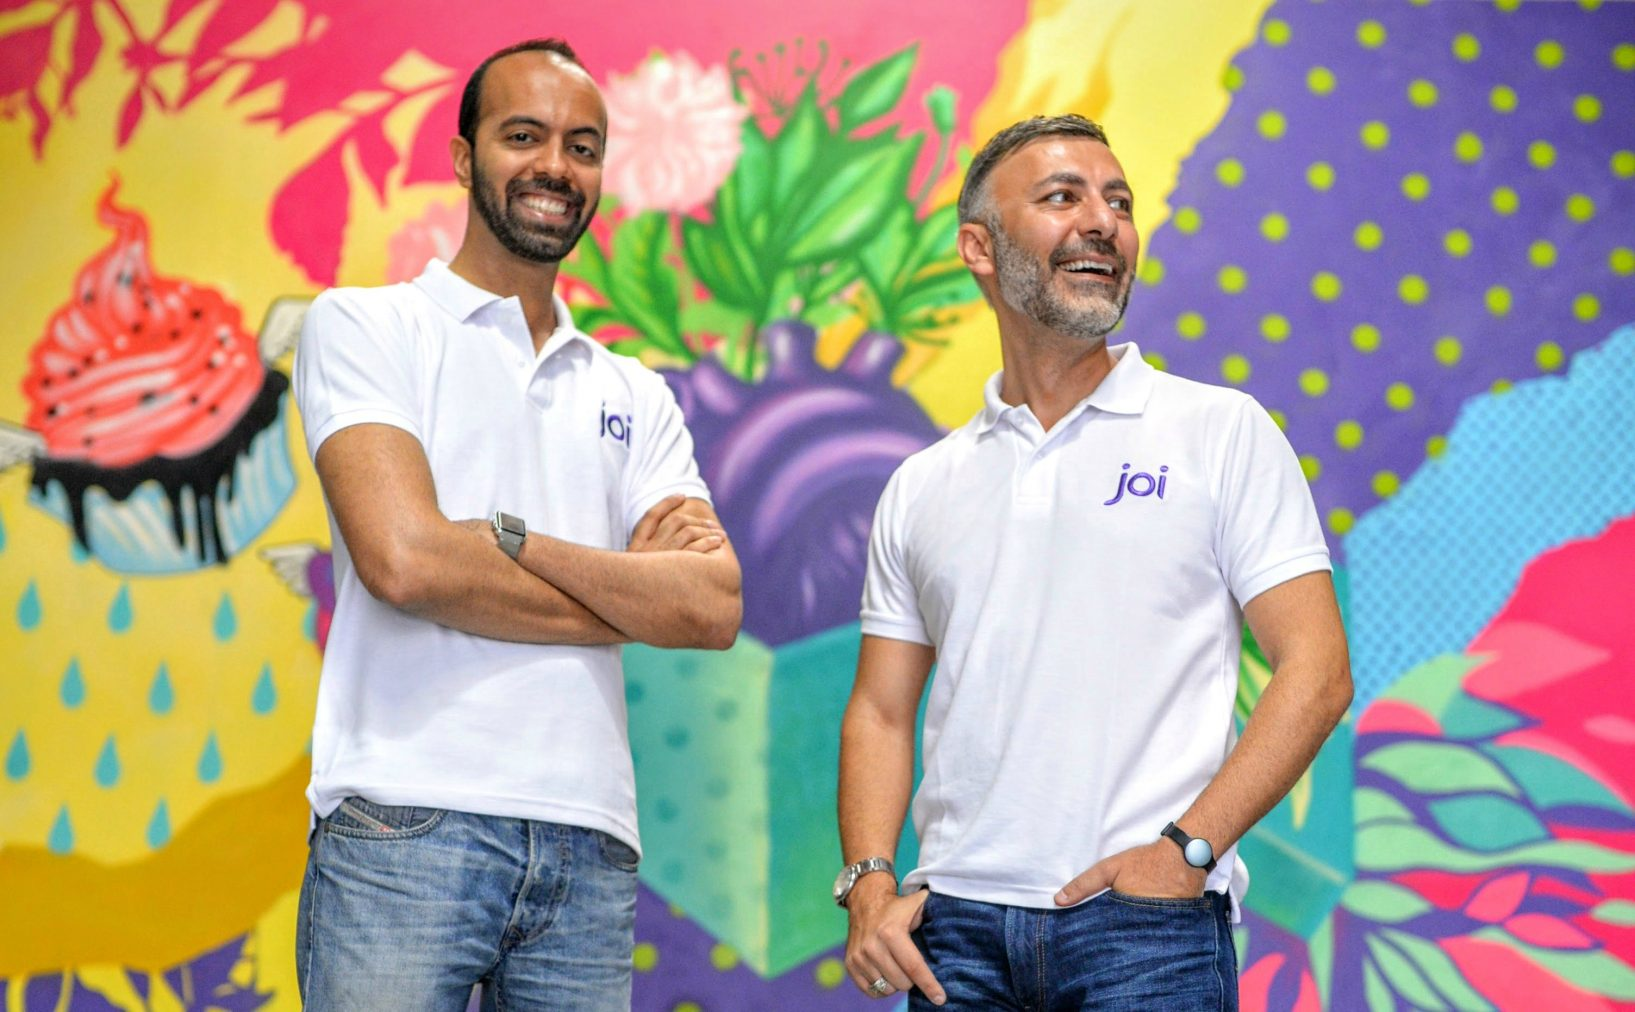 With $1.5 Million In Seed Funding, Joigifts.com Founder Eyes Expansion